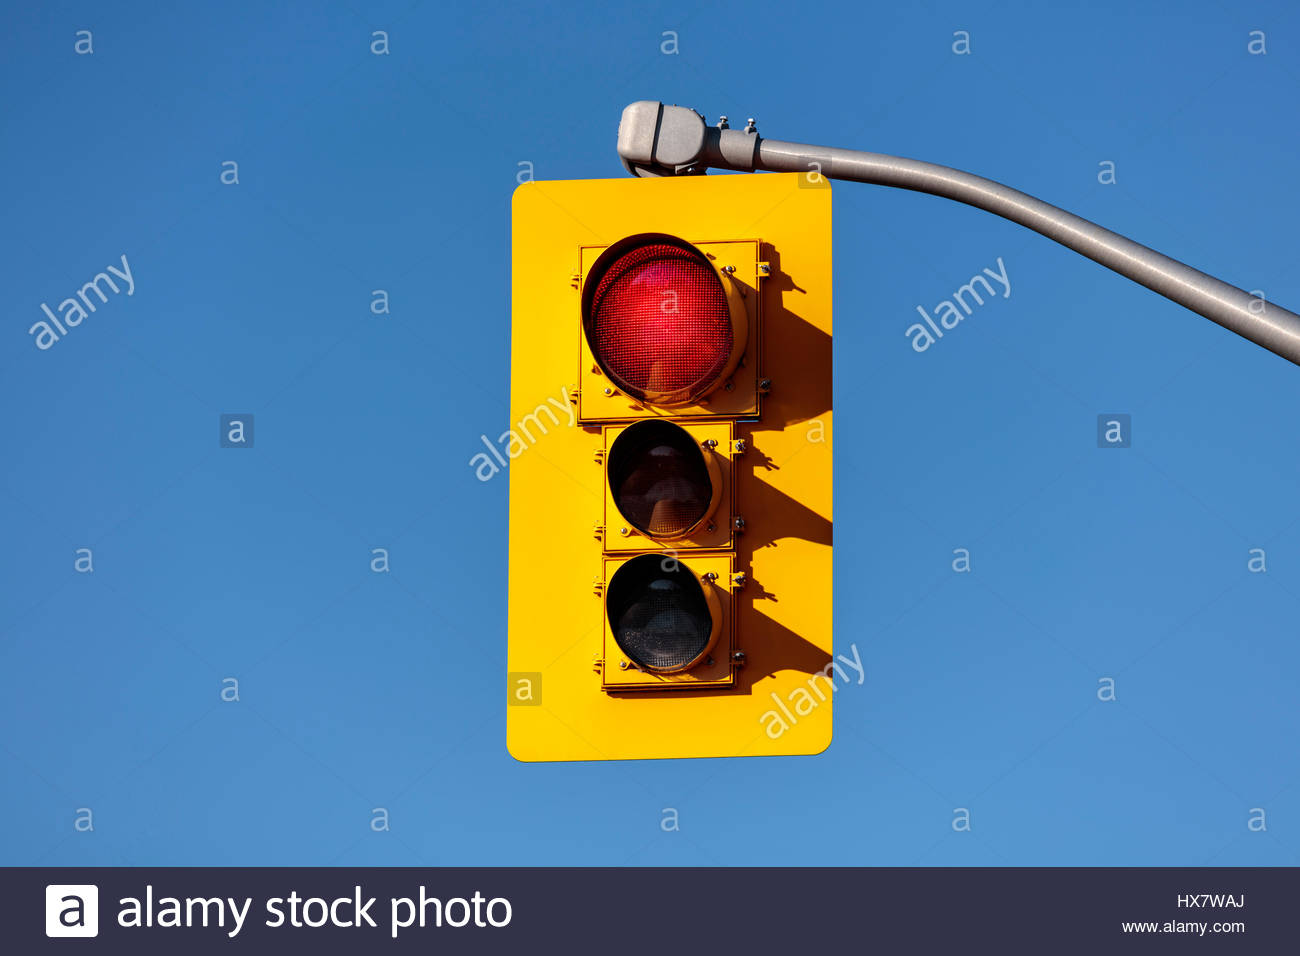 traffic lights, showing red, red, traffic signals, traffic lamps, signal lights, traffic control signals, the signal - Stock Image